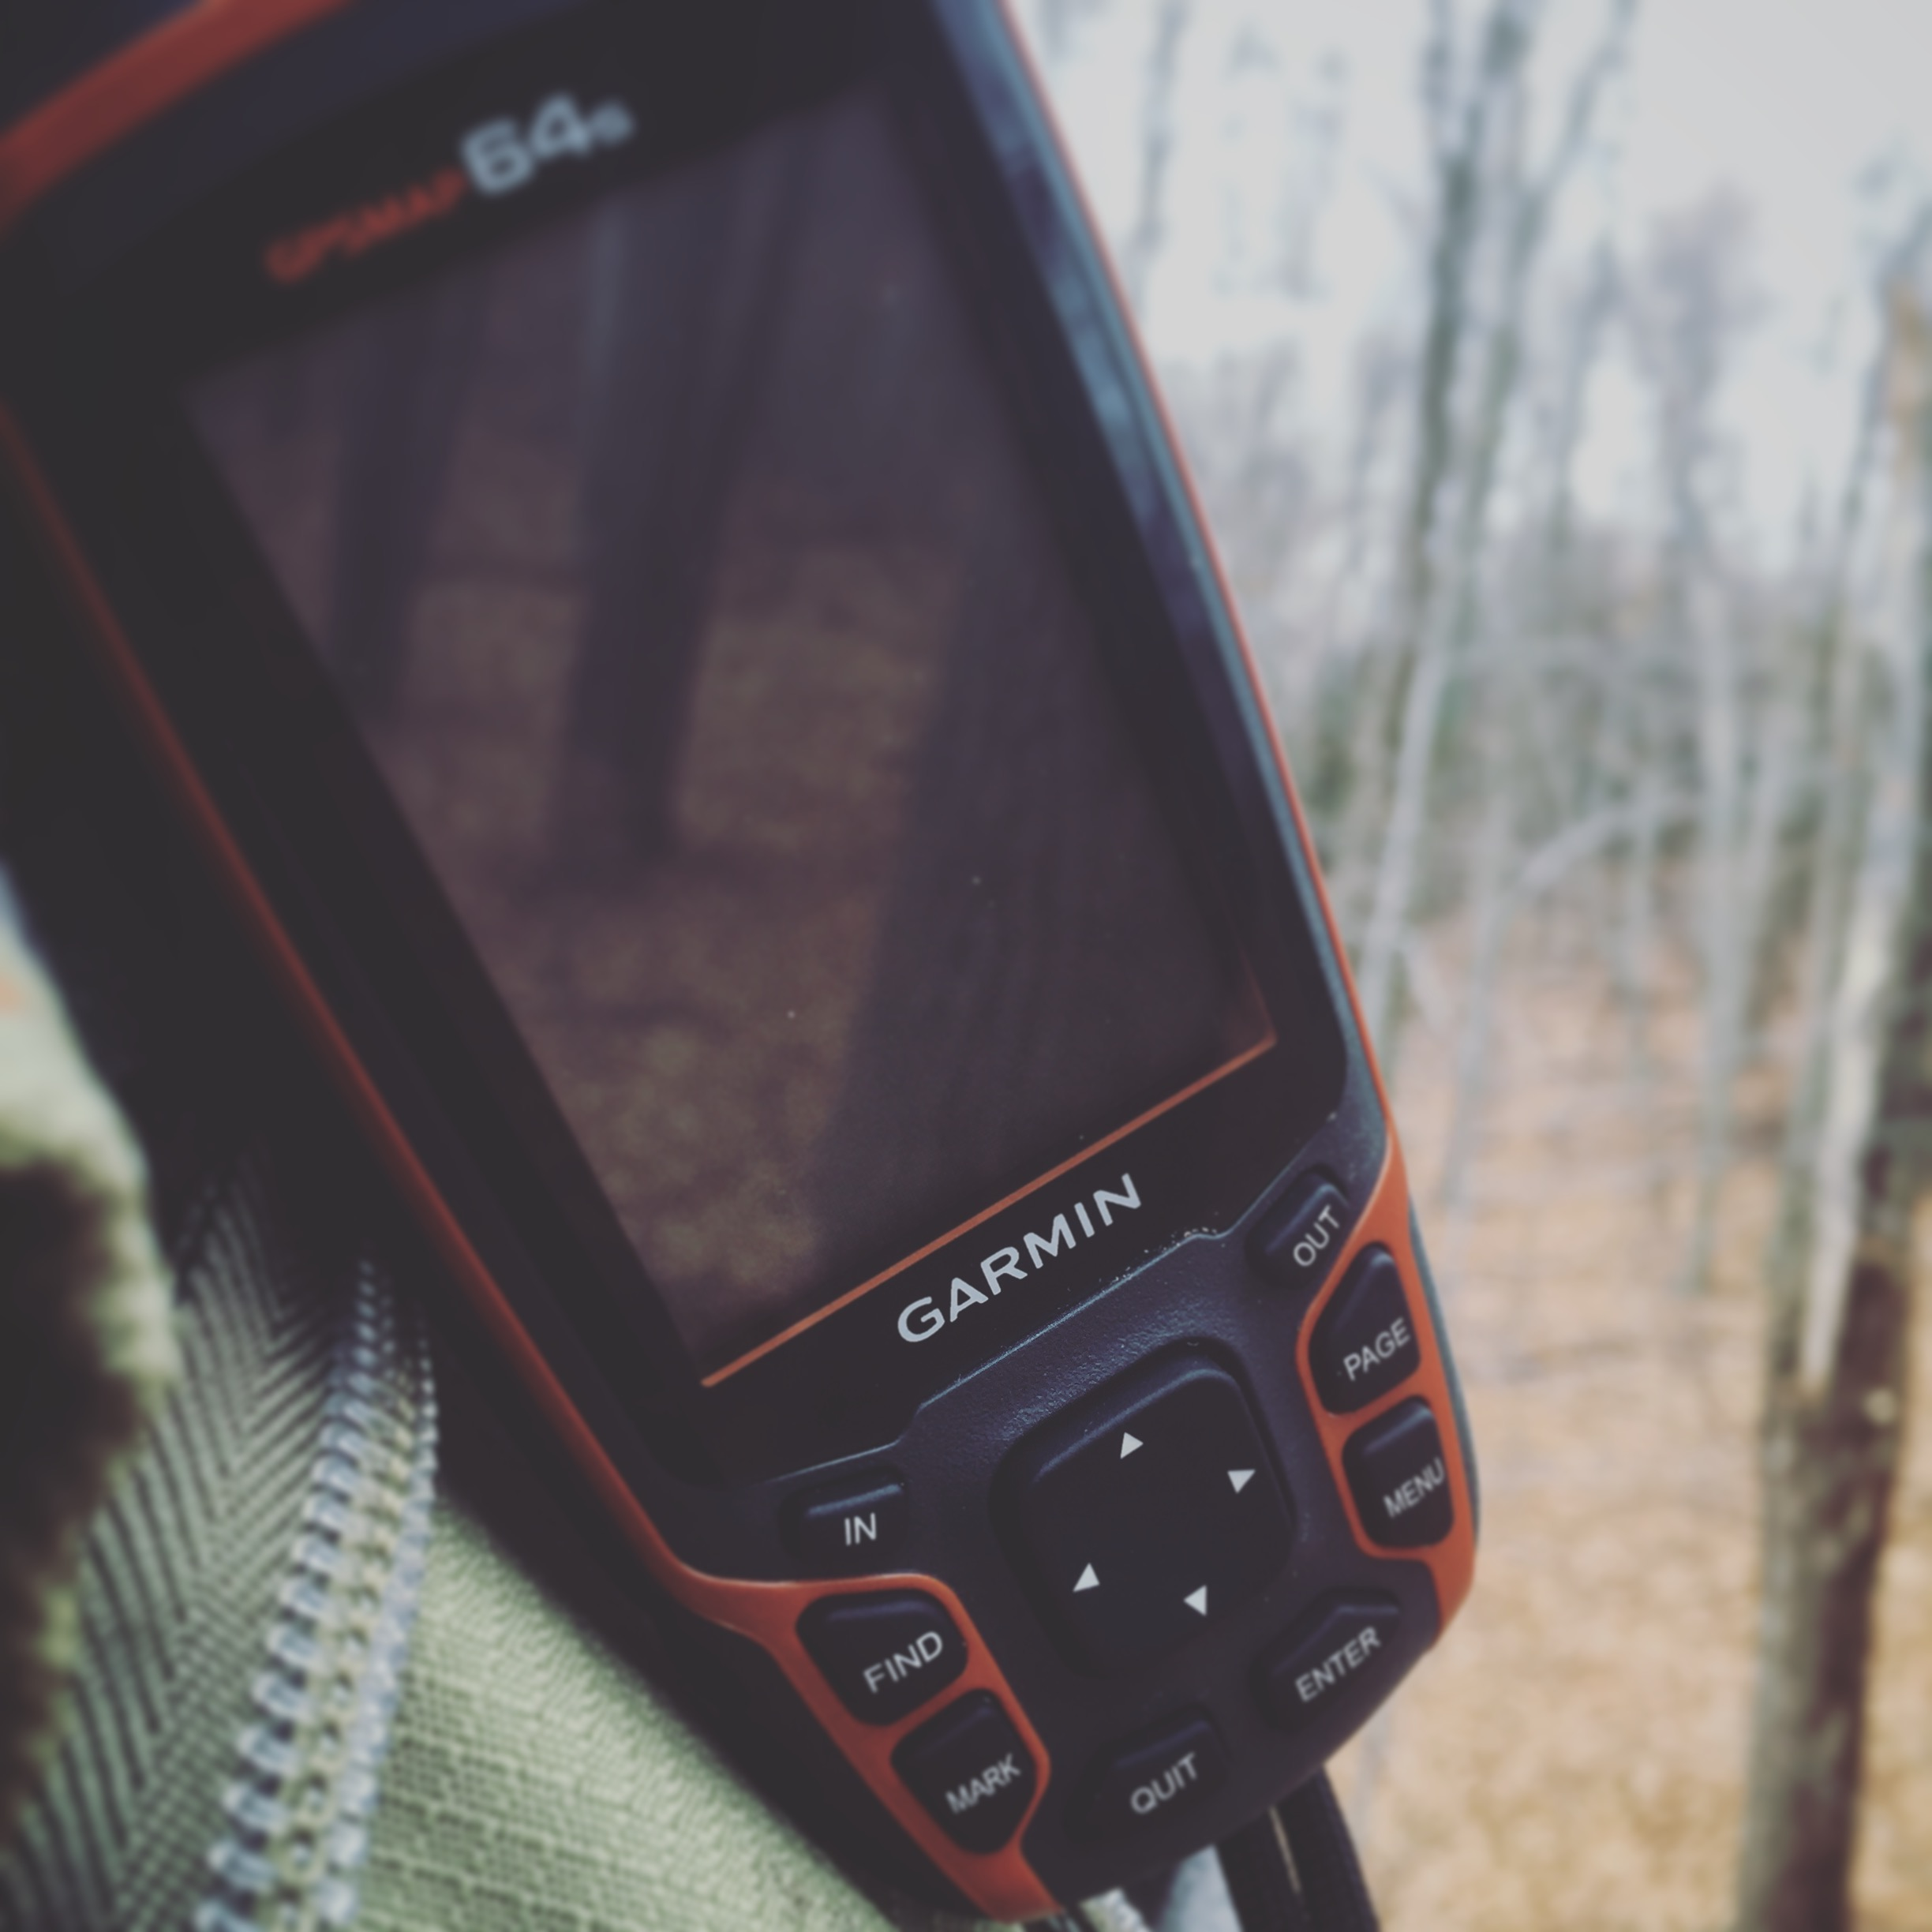 This Garmin Map 64s allows for download aerial imagery and topo lines. Placing waypoints at bedding and stand locations allows for further evaluation of access routes at a later time.)